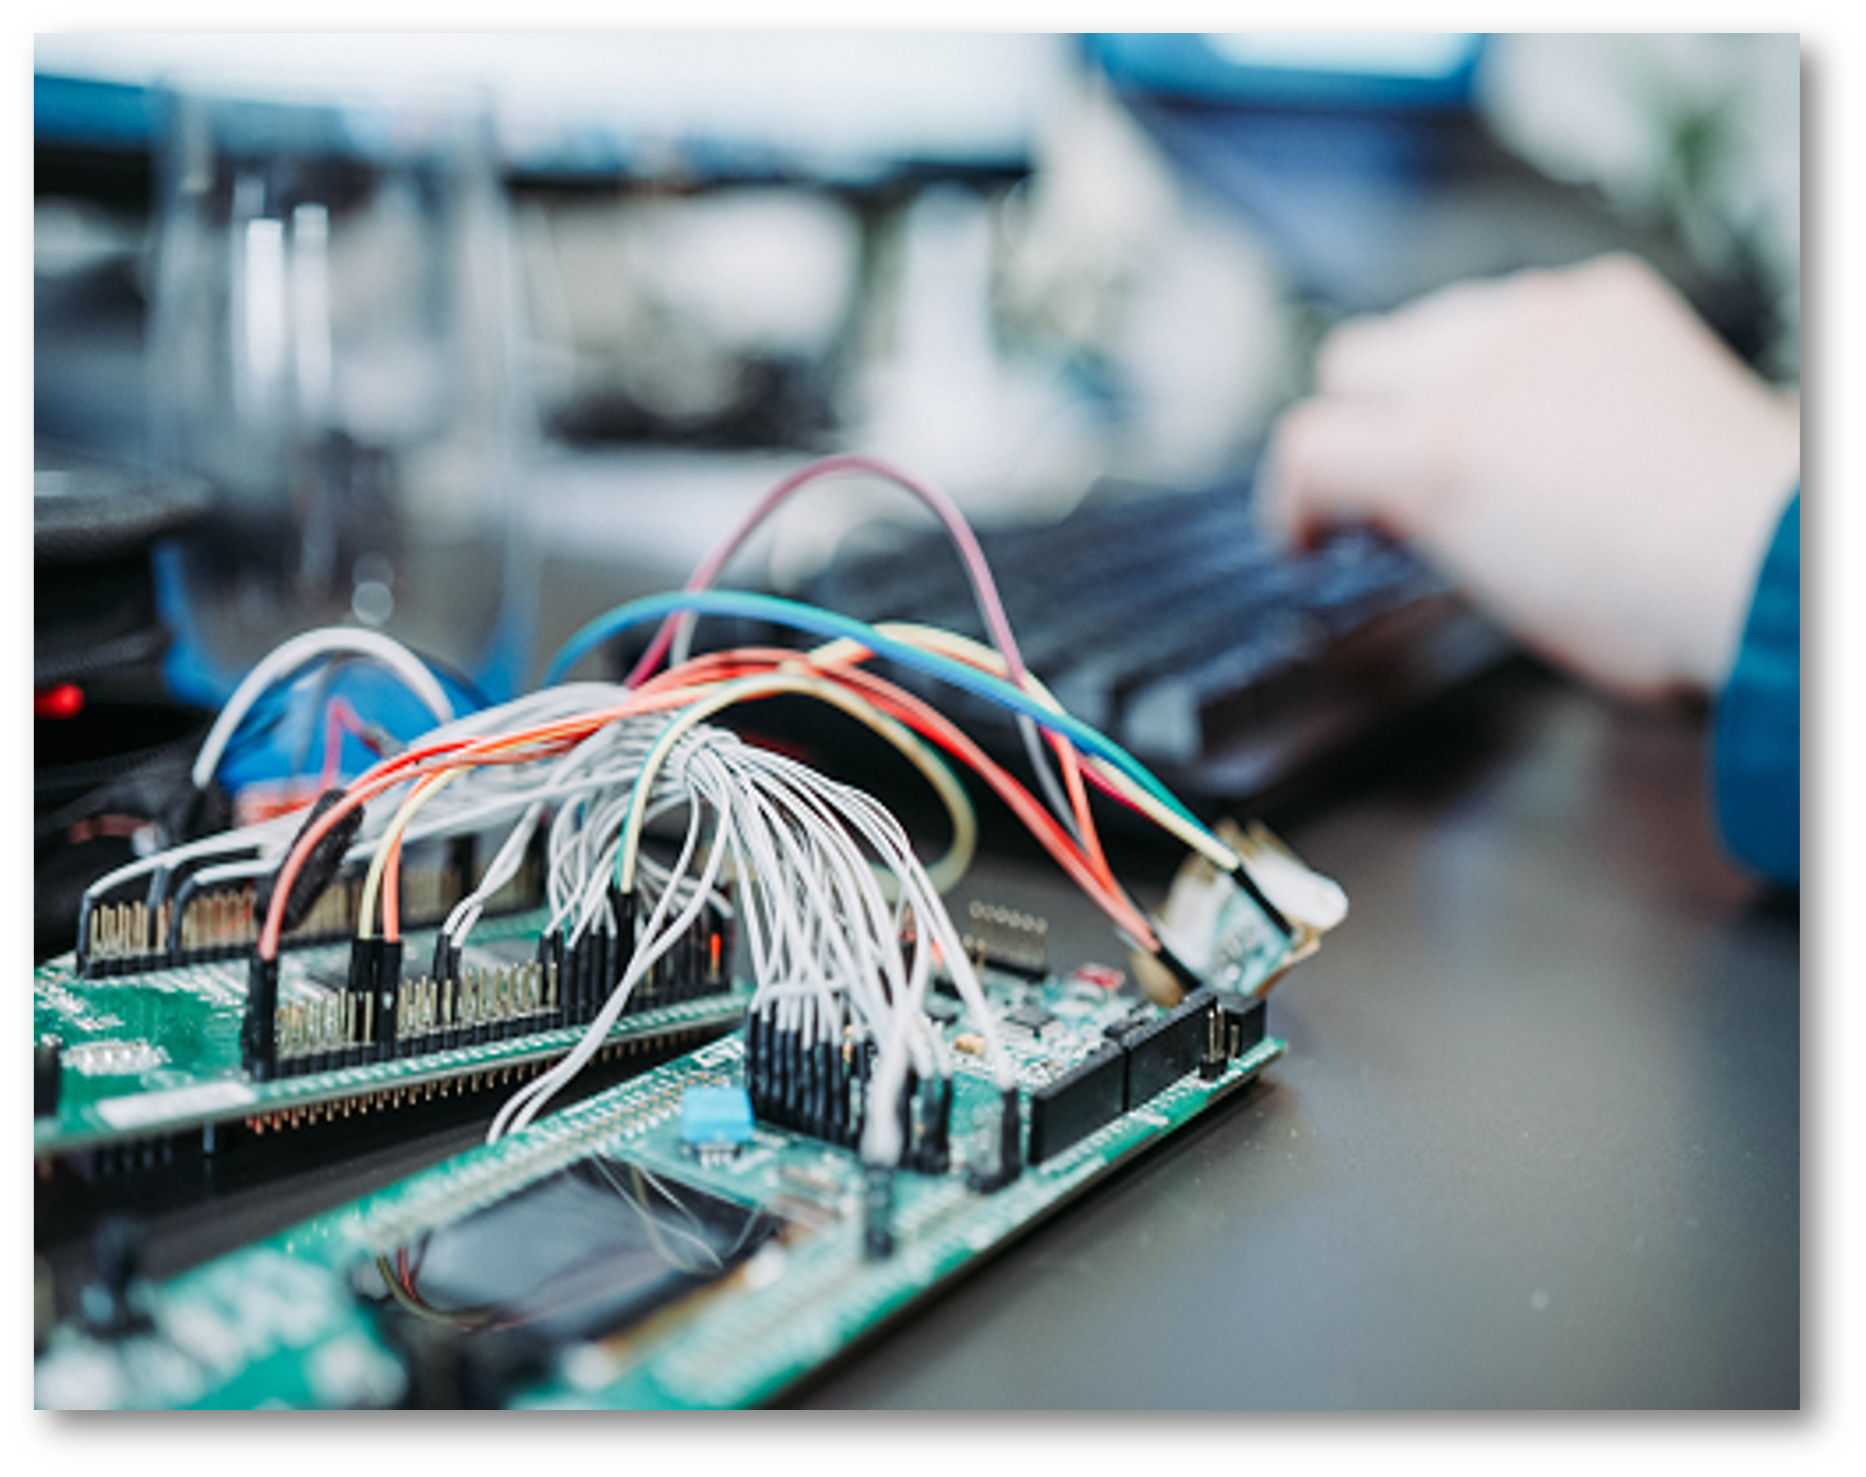 Embedded-System-Applications